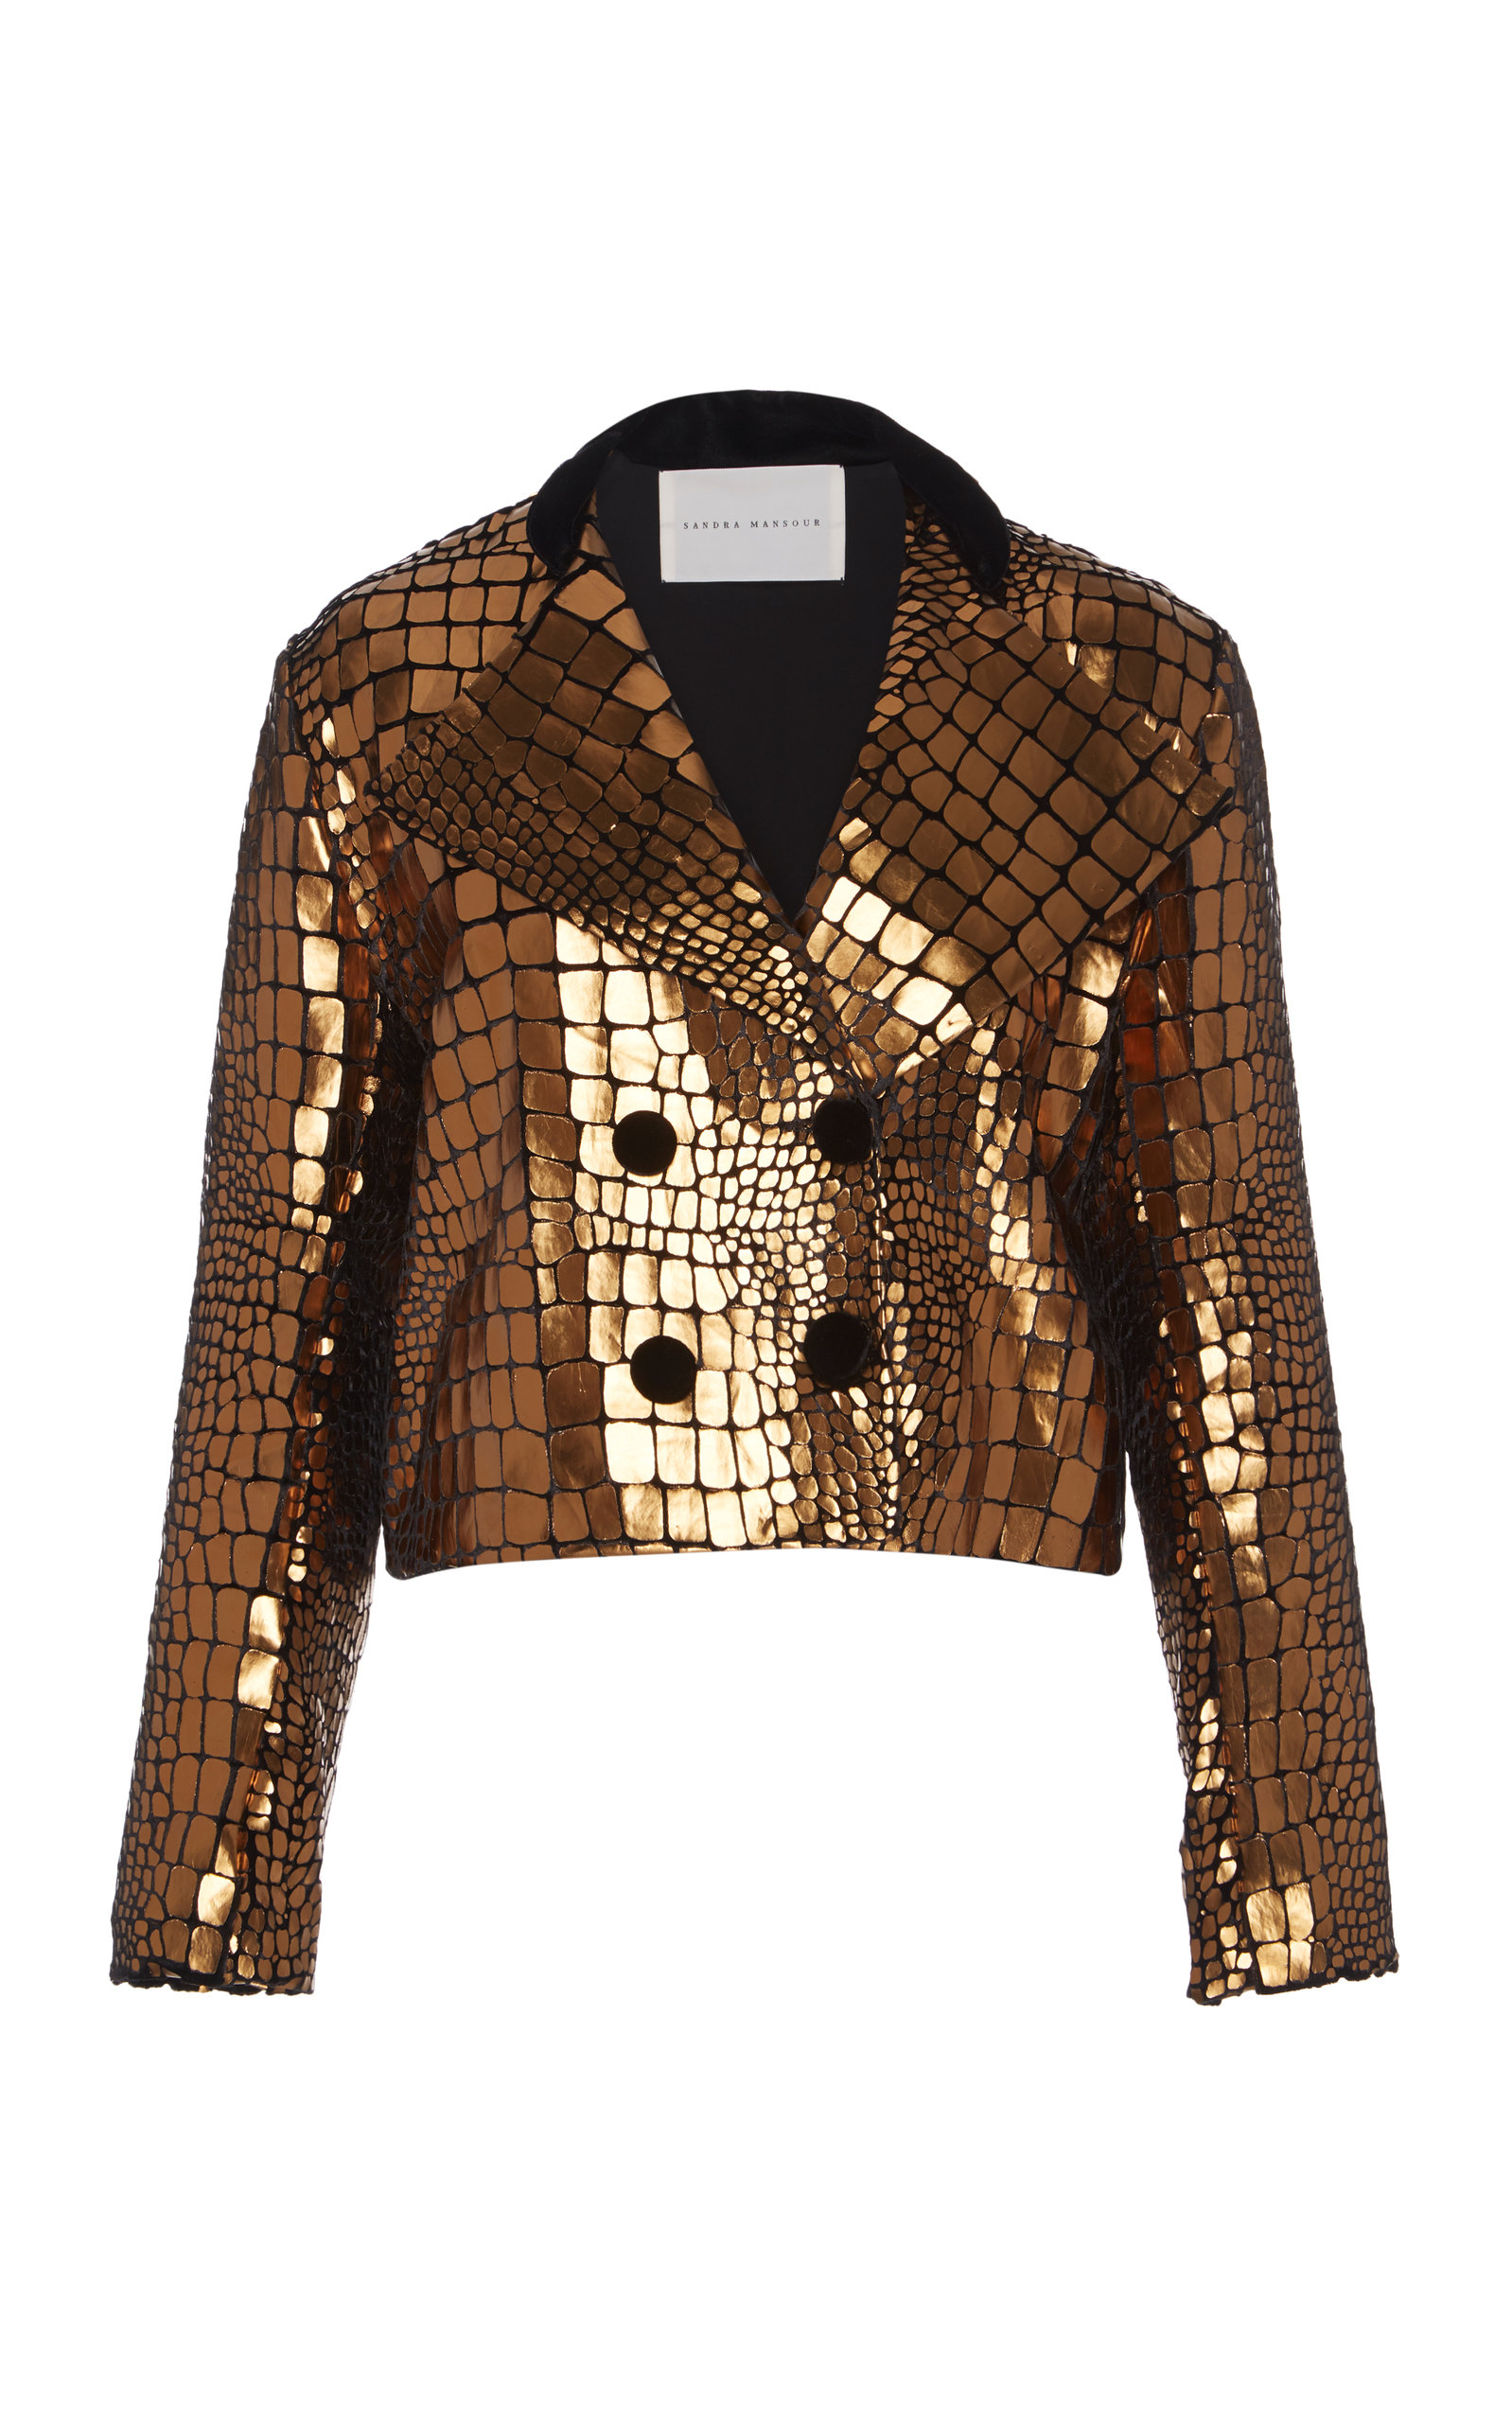 SANDRA MANSOUR Serpent Pleather Velvet Cropped Jacket in Gold